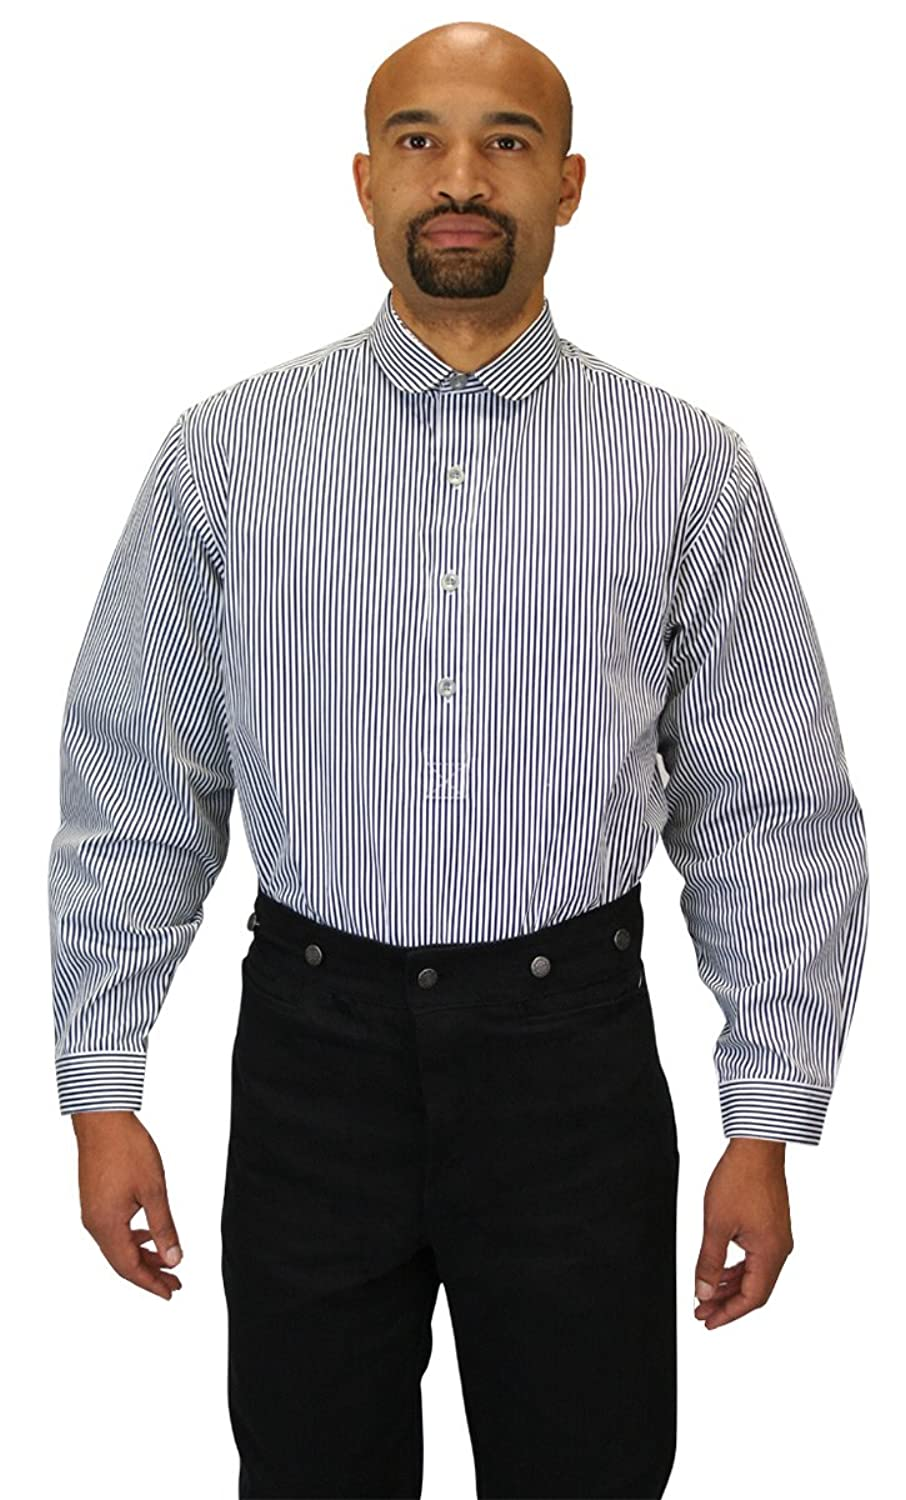 Edwardian Men's Shirts & Sweaters Coulter Edwardian Club Collar Dress Shirt $59.95 AT vintagedancer.com